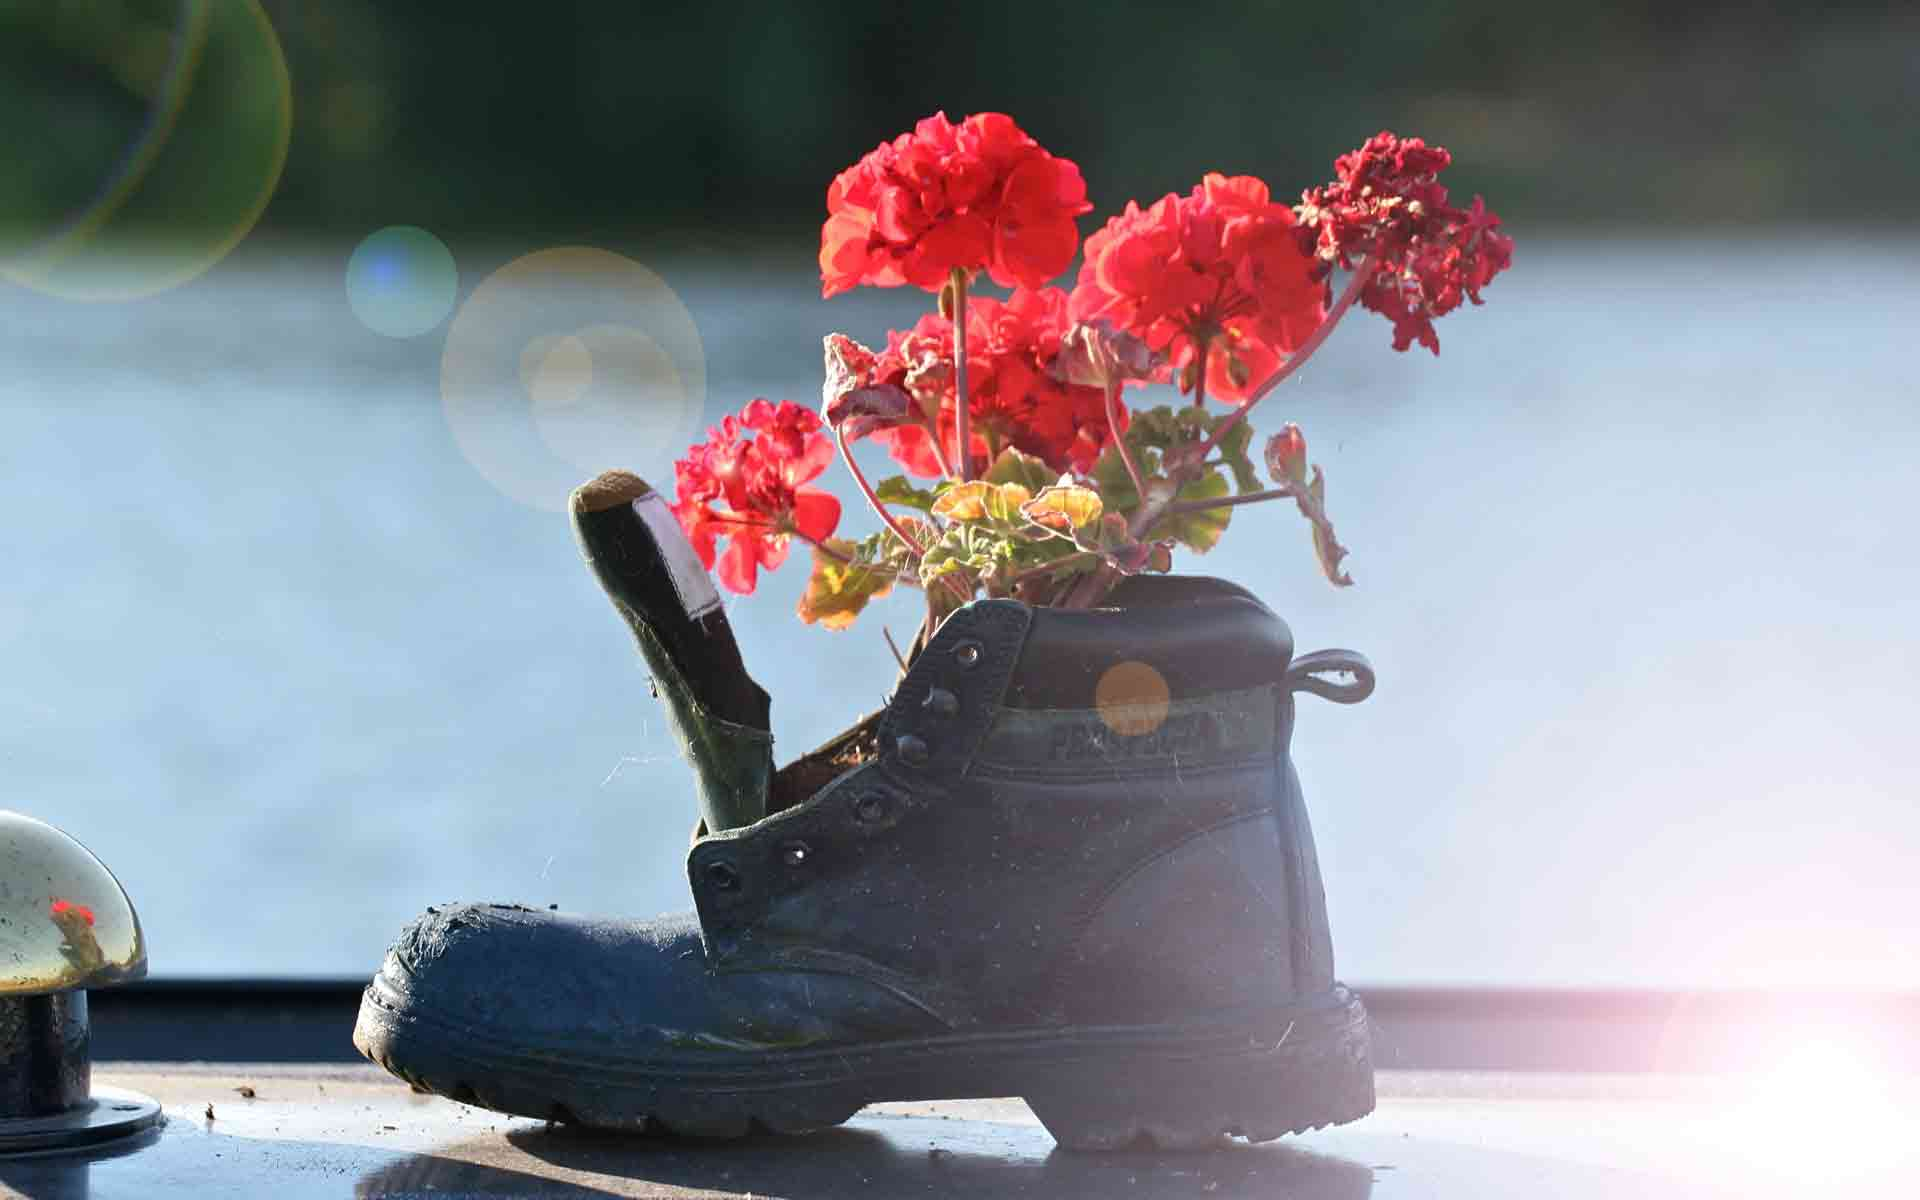 Shoe and flowers